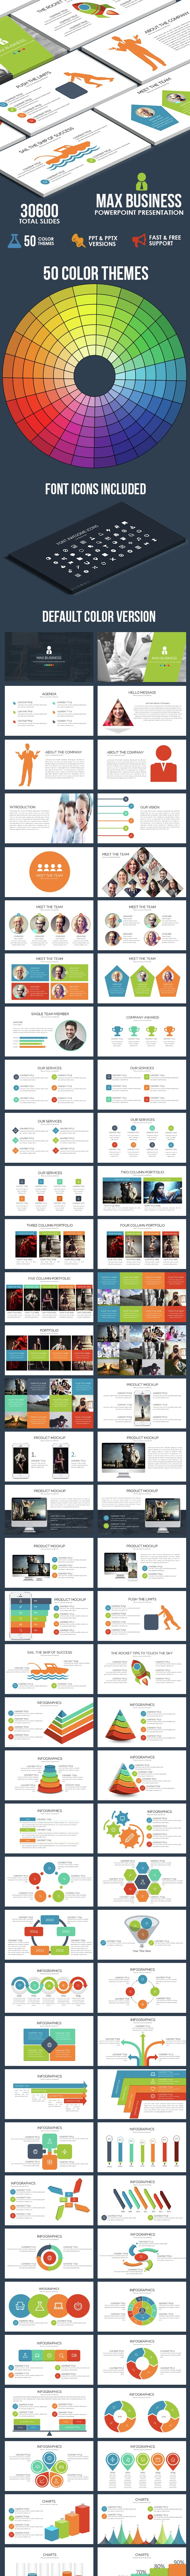 Max Business Powerpoint Template - Business PowerPoint Templates